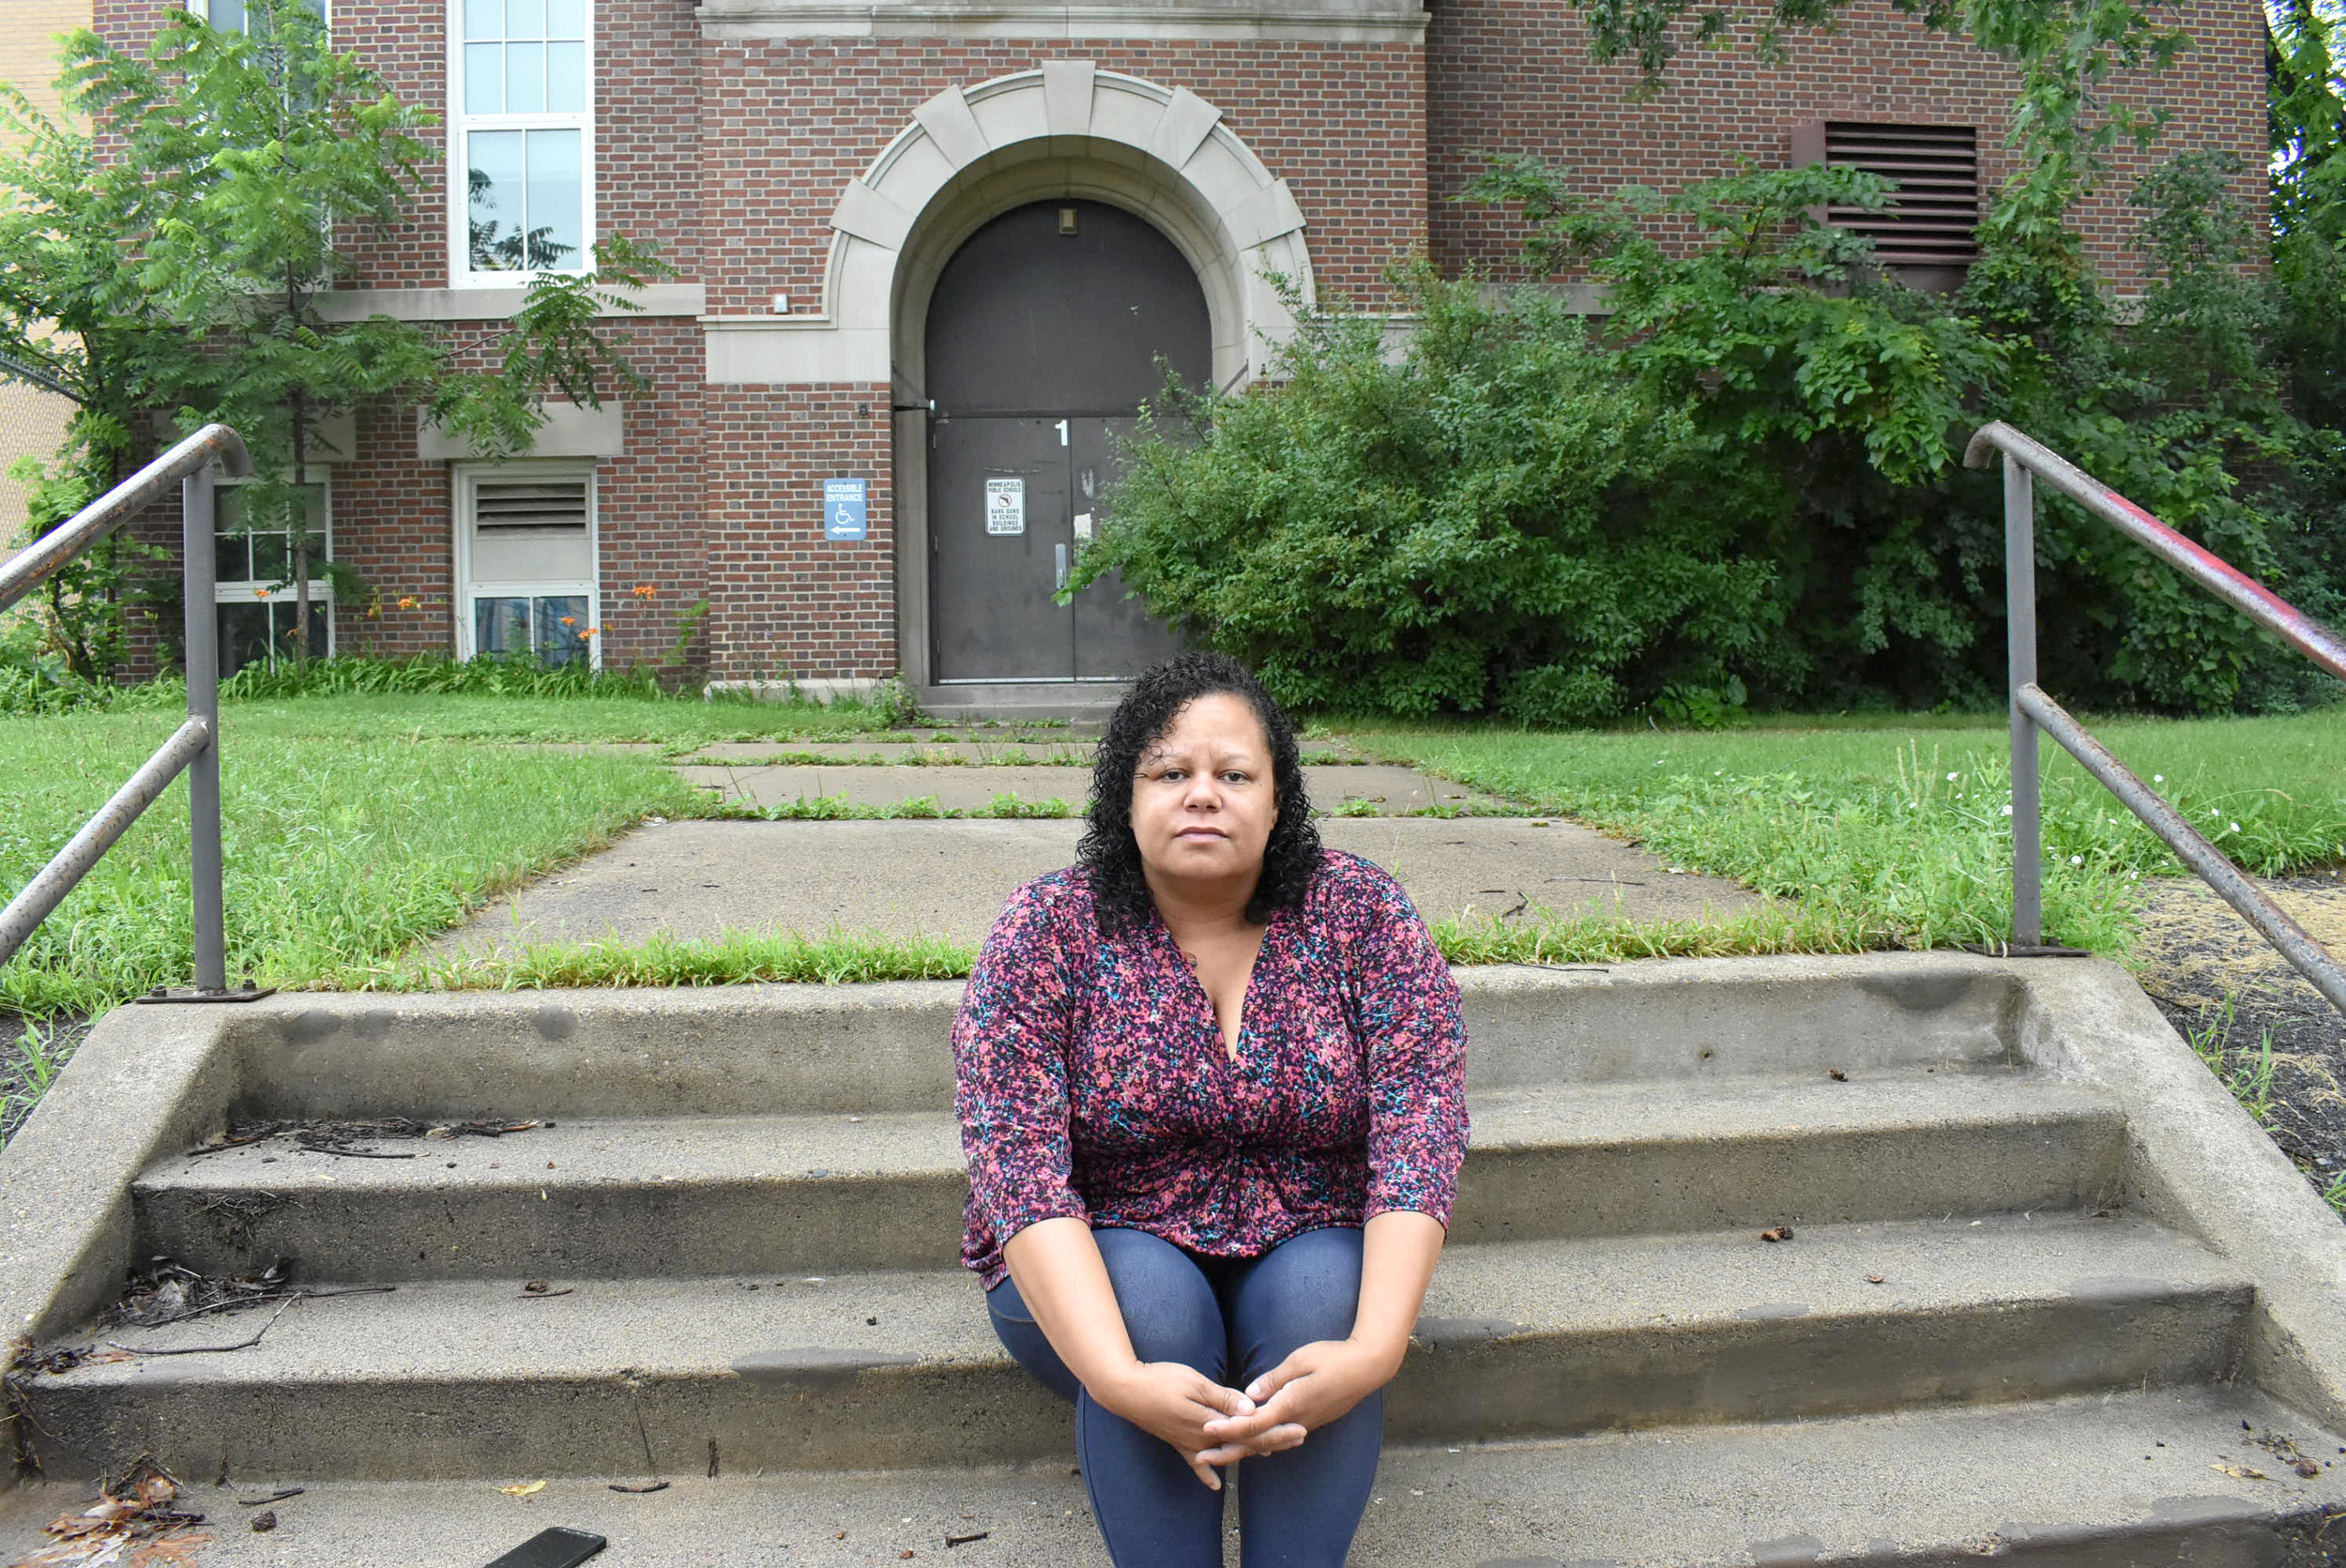 MPS Director KerryJo Felder believes a lack of trust between the district and Northsiders could be rebuilt if the district opens the vacant schools up and allows the community to access them. Photos by Cirien Saadeh